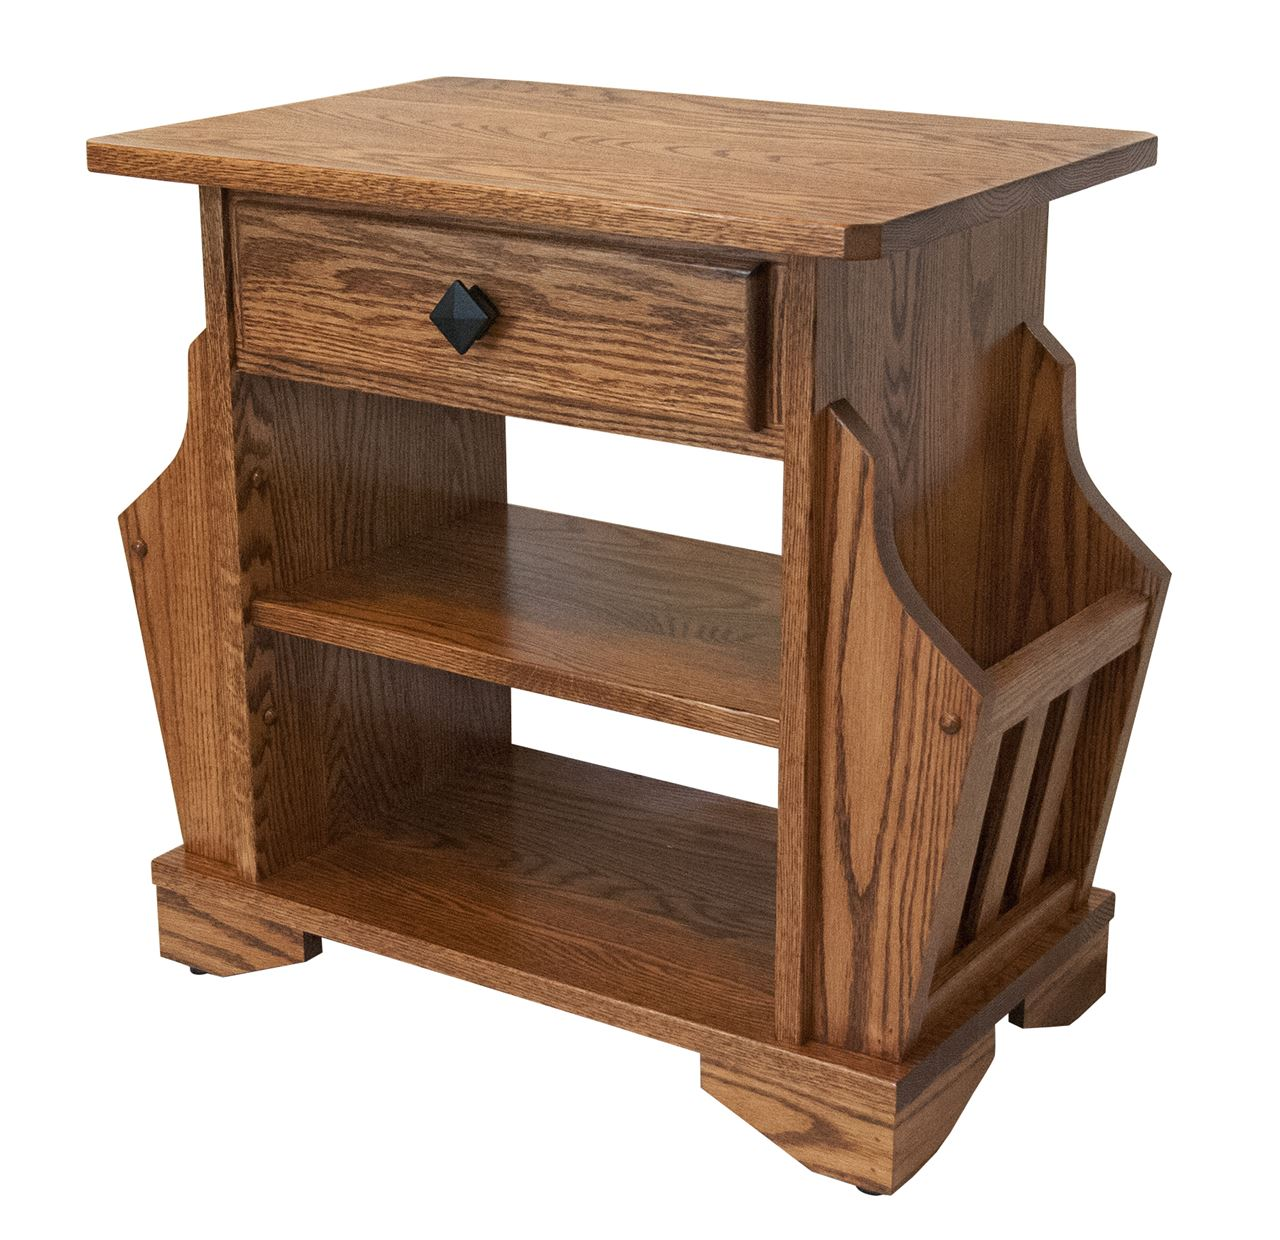 Attractive Picture Of Solid Oak Amish Built Magazine Rack End Table Mission Style W/  Drawer Great Ideas